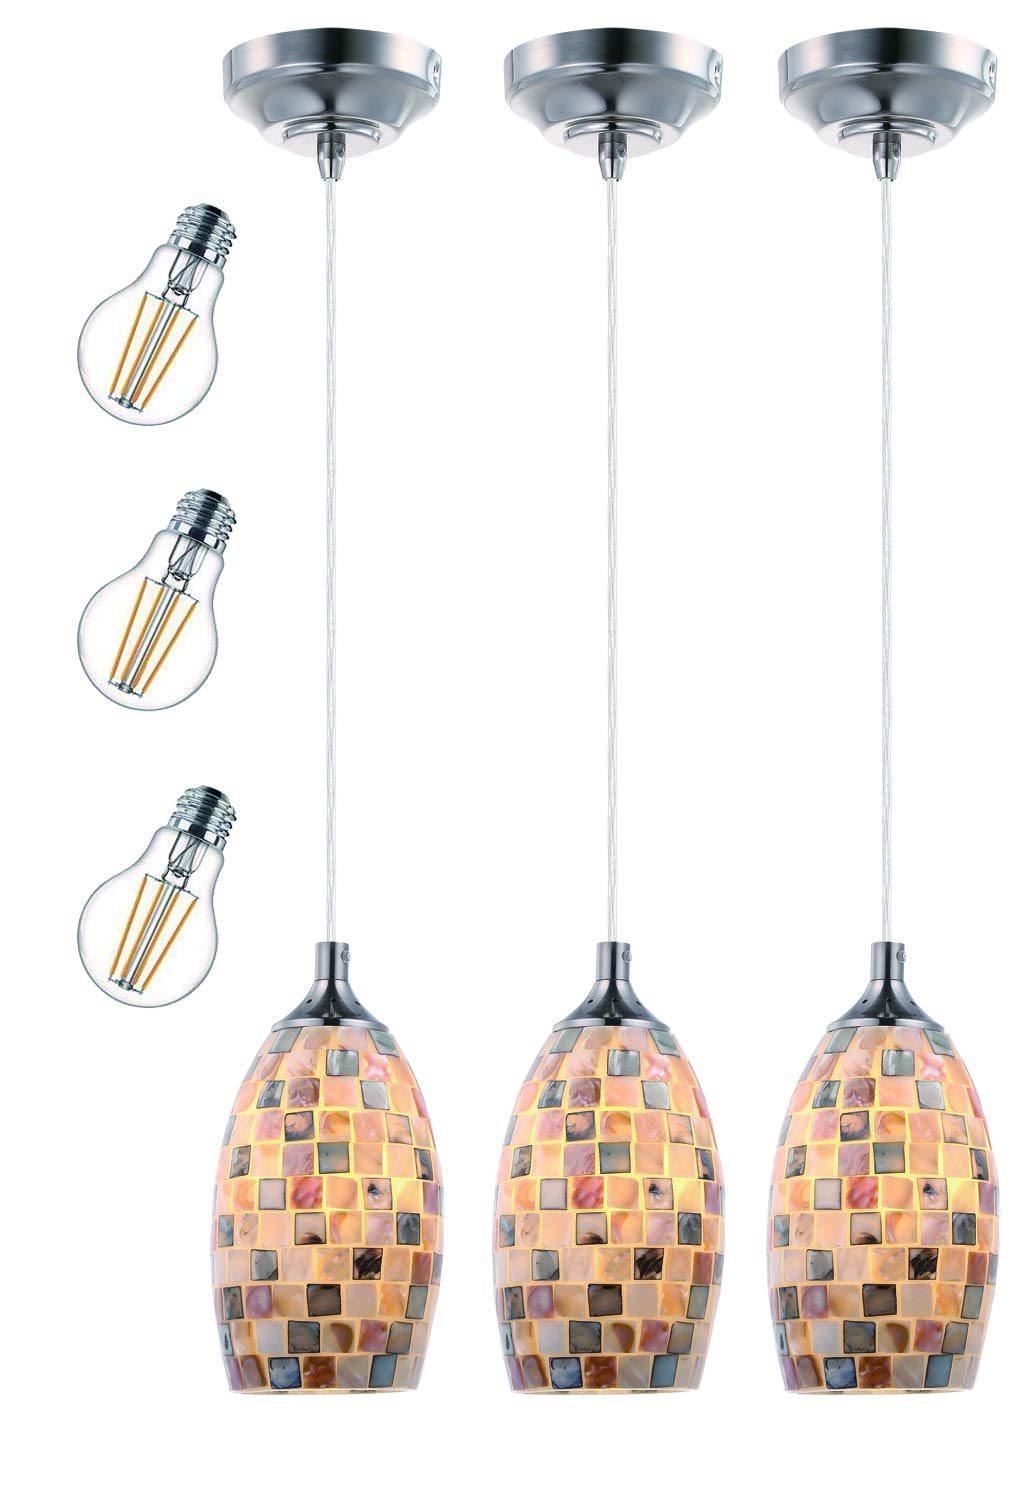 Cloudy Bay Mini Pendant Light,Mosaic Glass Ceiling Hanging Lighting Fixture for Kitchen Island,Includes 3 A19 LED Filament Bulbs - 3 Pack